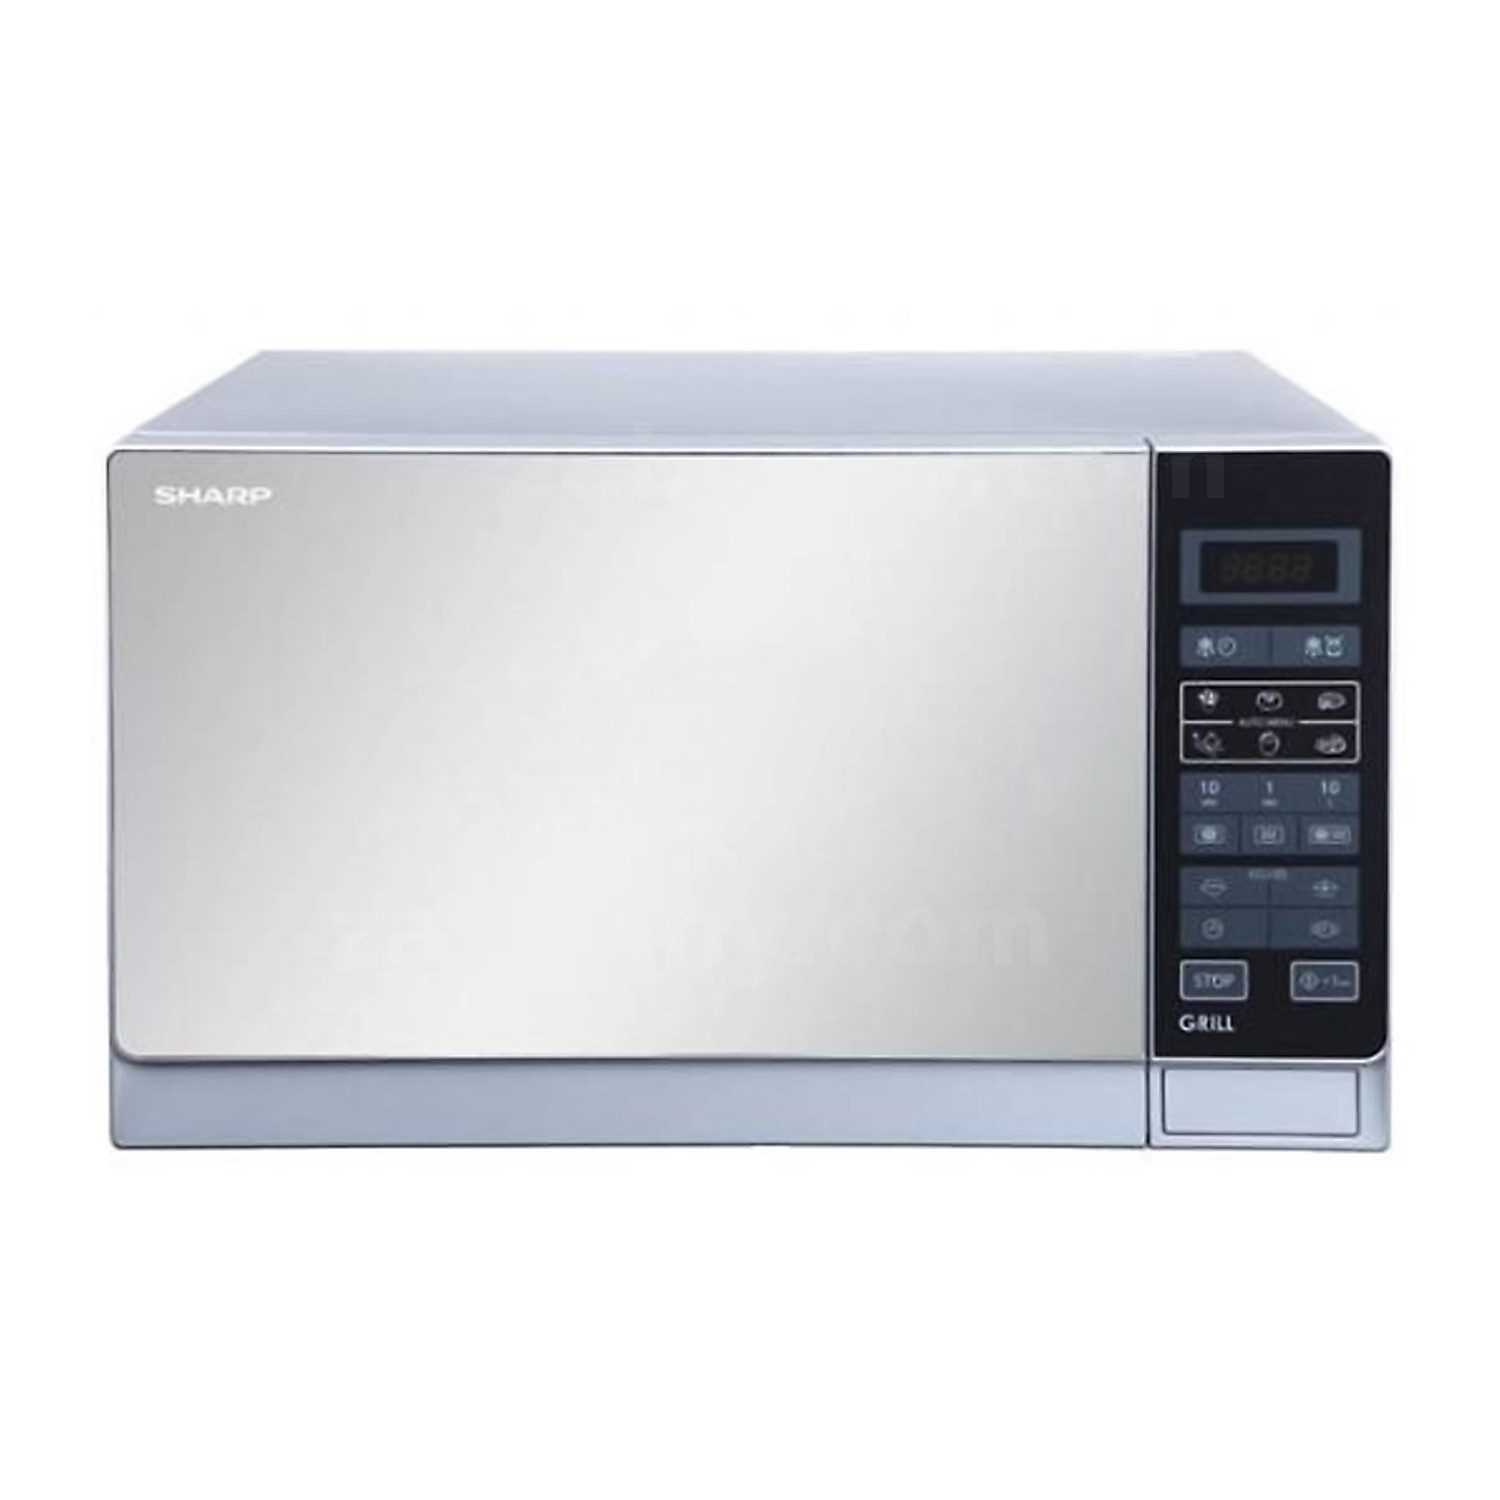 sharp microwave oven 25 litres